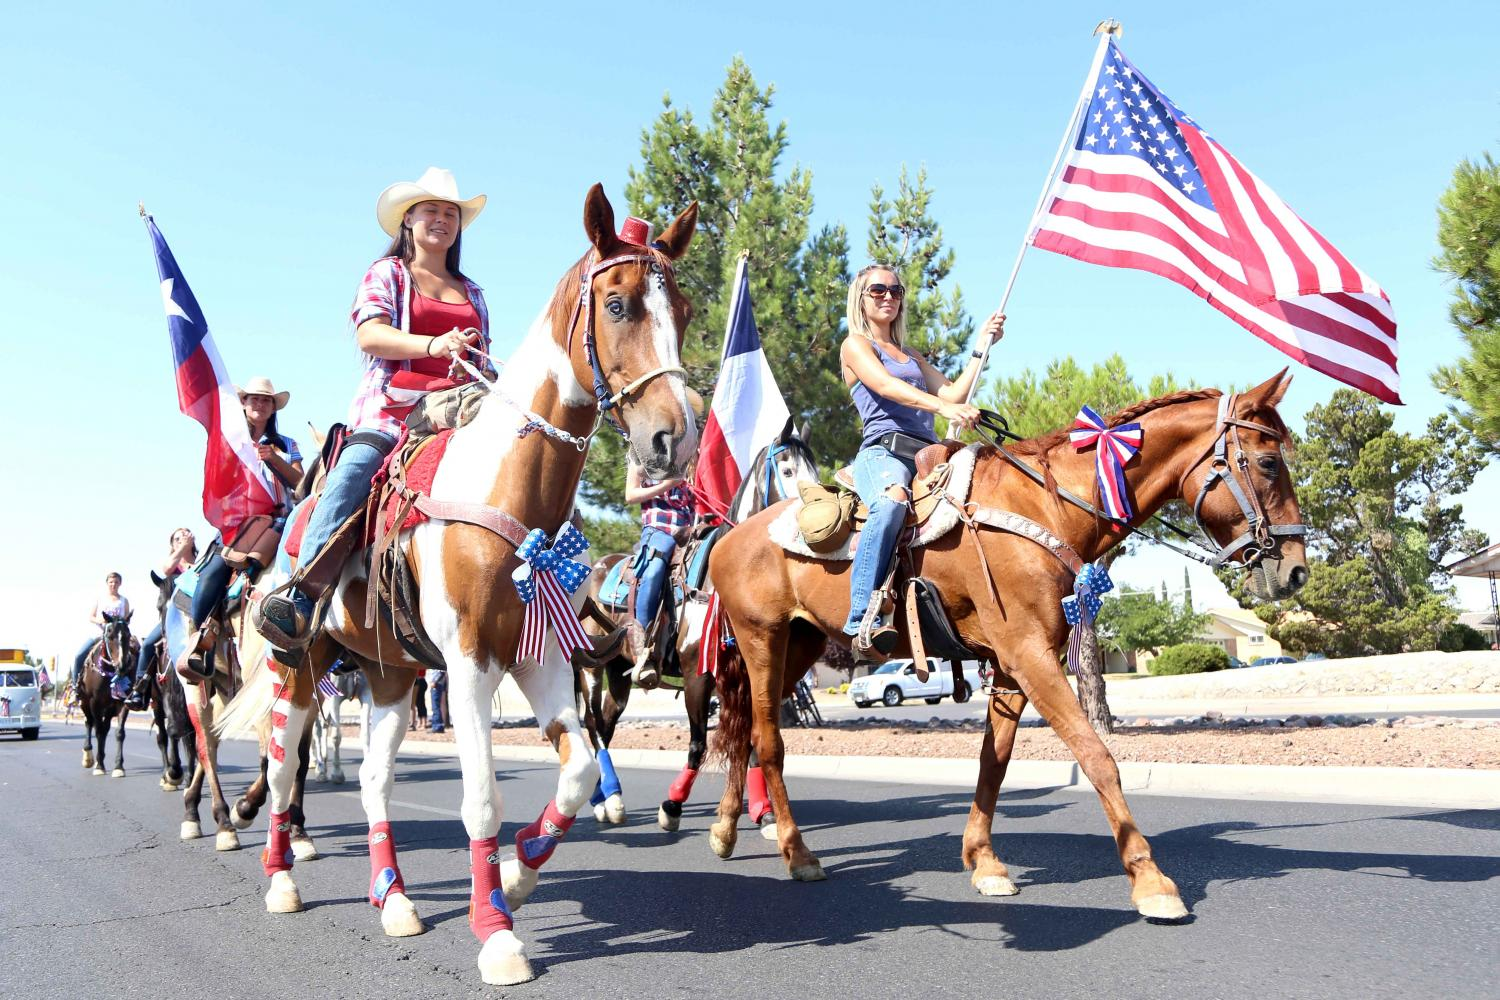 Annual+Independence+Day+parade+celebrates+America